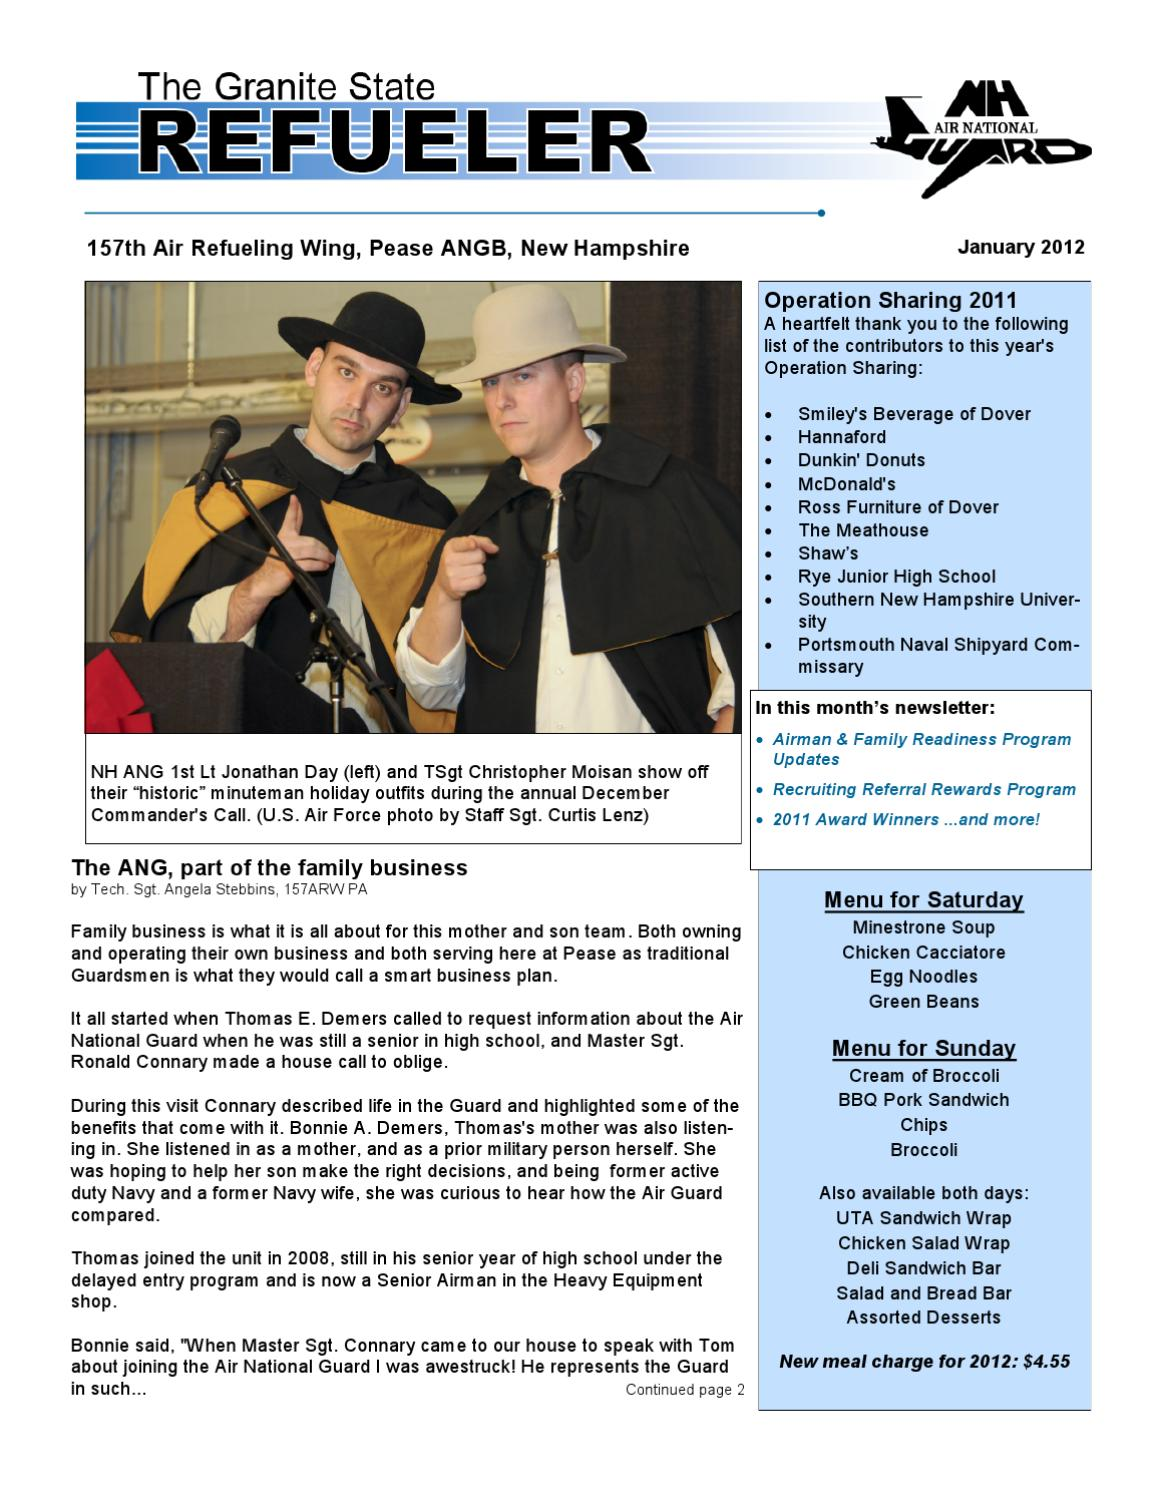 The Refueler January 2012 By Dave Horn Page 1 Issuu